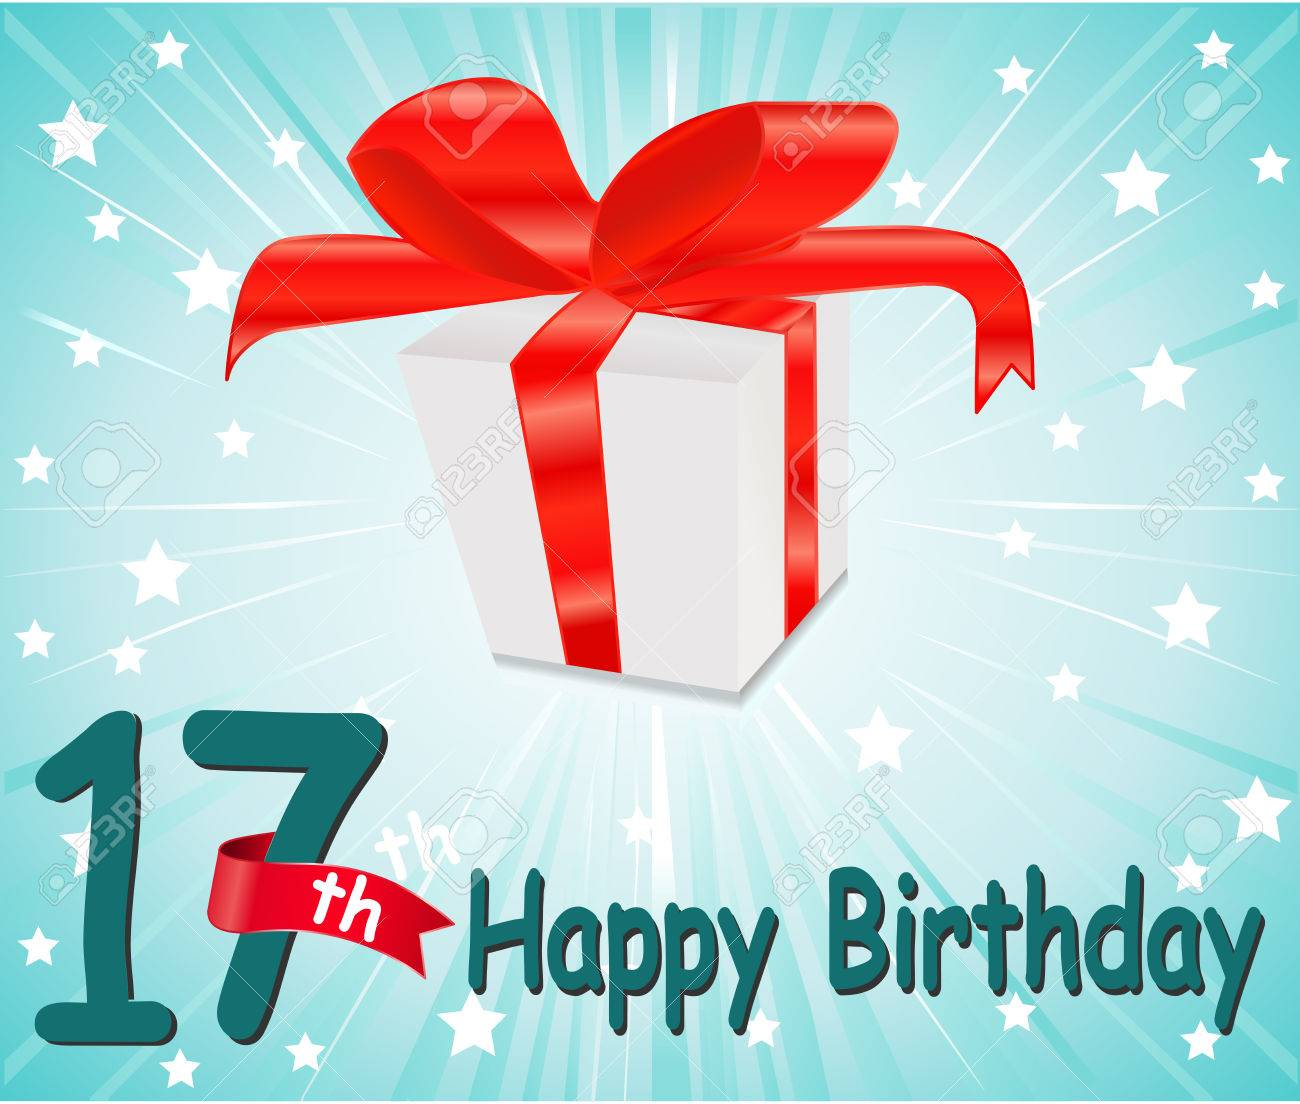 17 Year Happy Birthday Card With Gift And Colorful Background Stock Vector